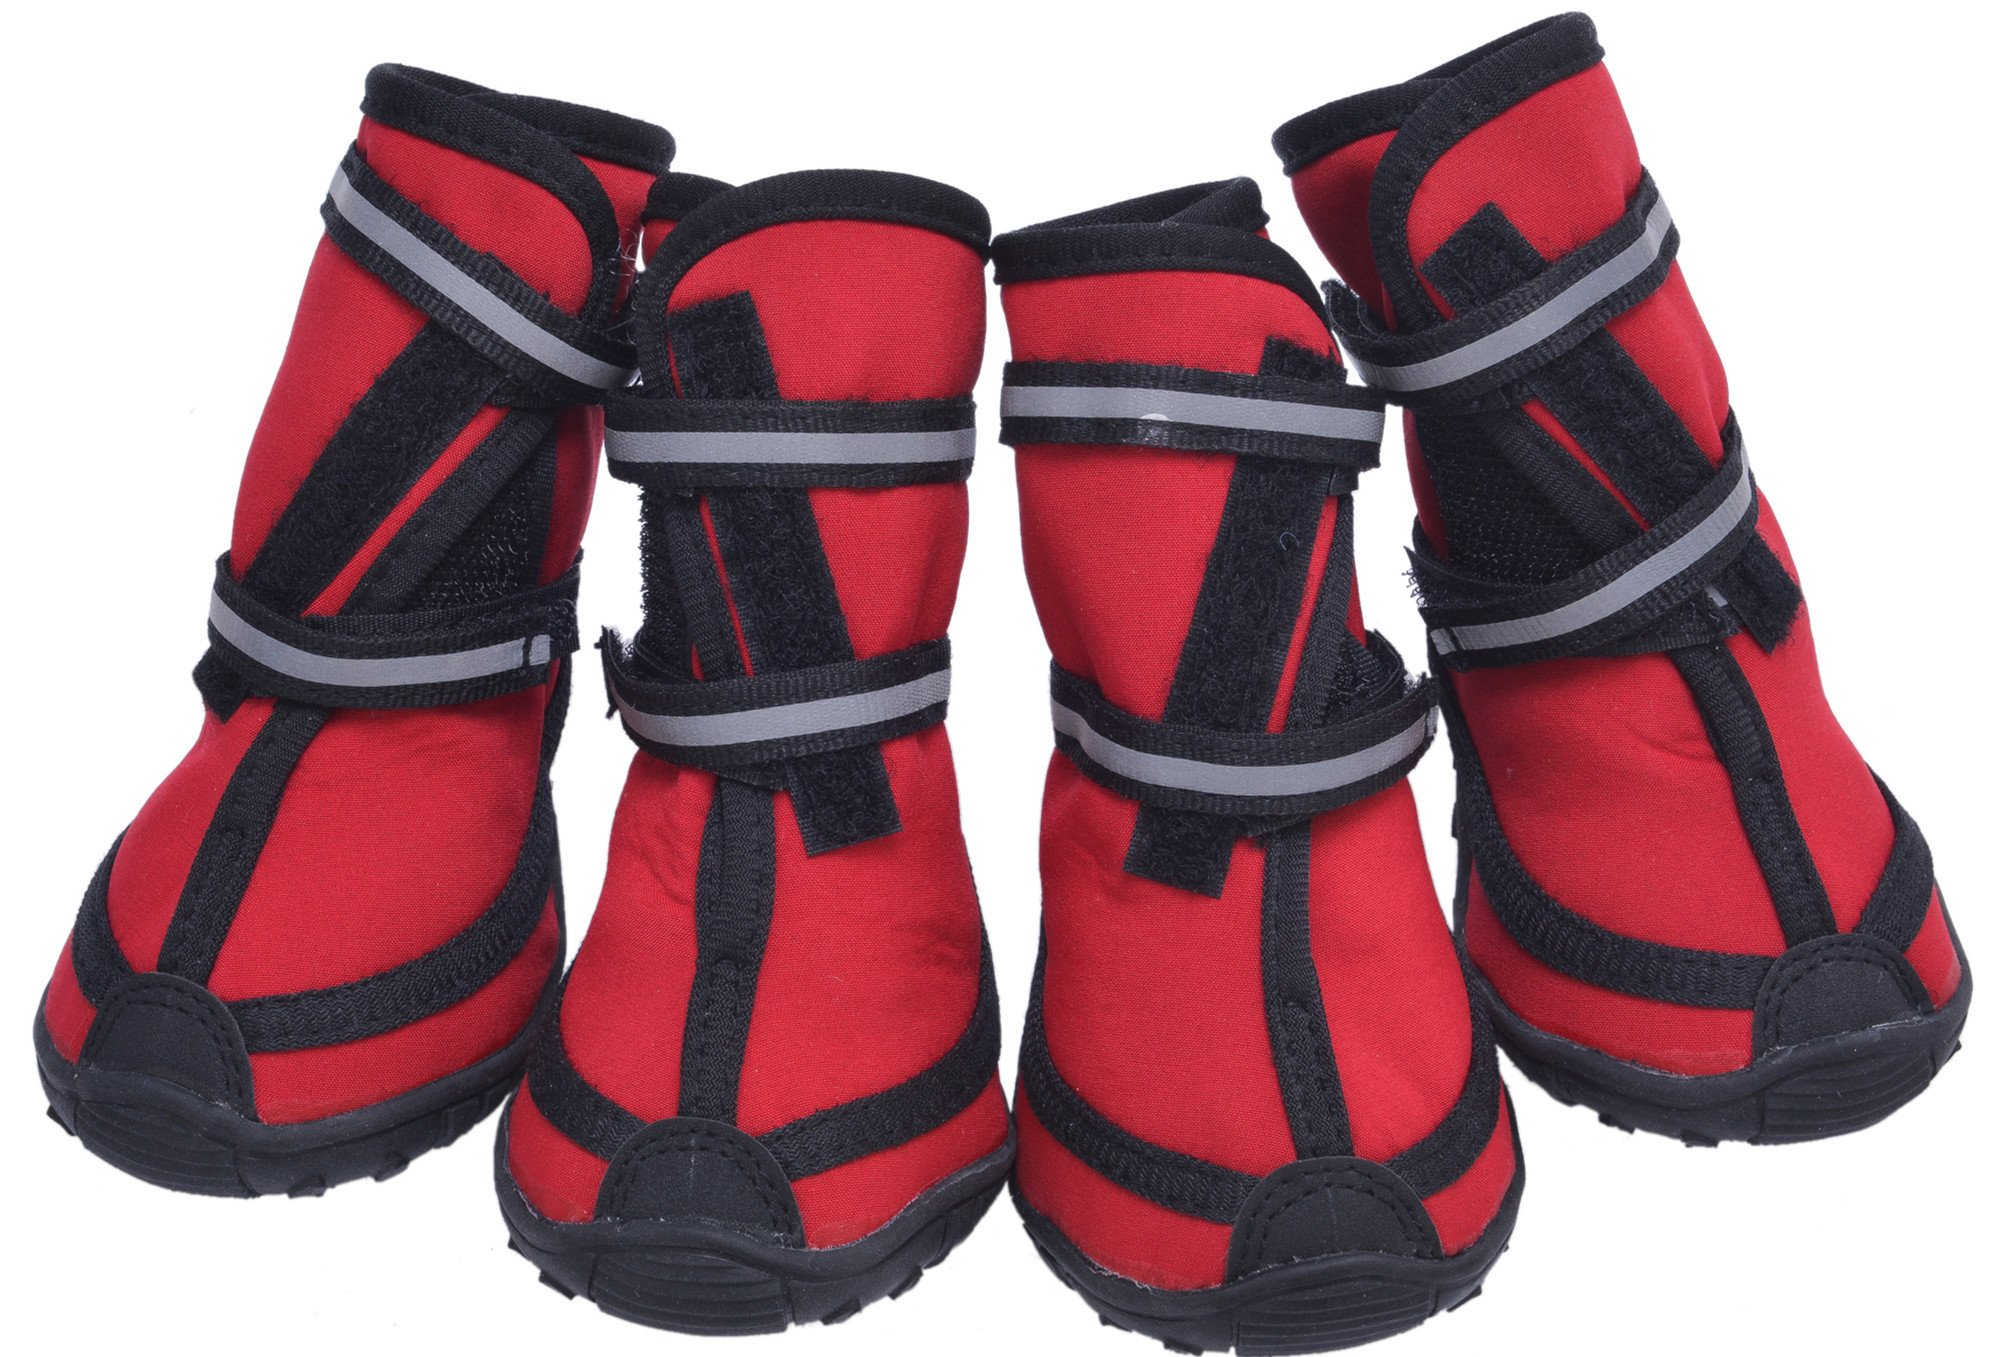 Waterproof Dog Walking Boots Non Slip Paw Protectors Red 6(2.36